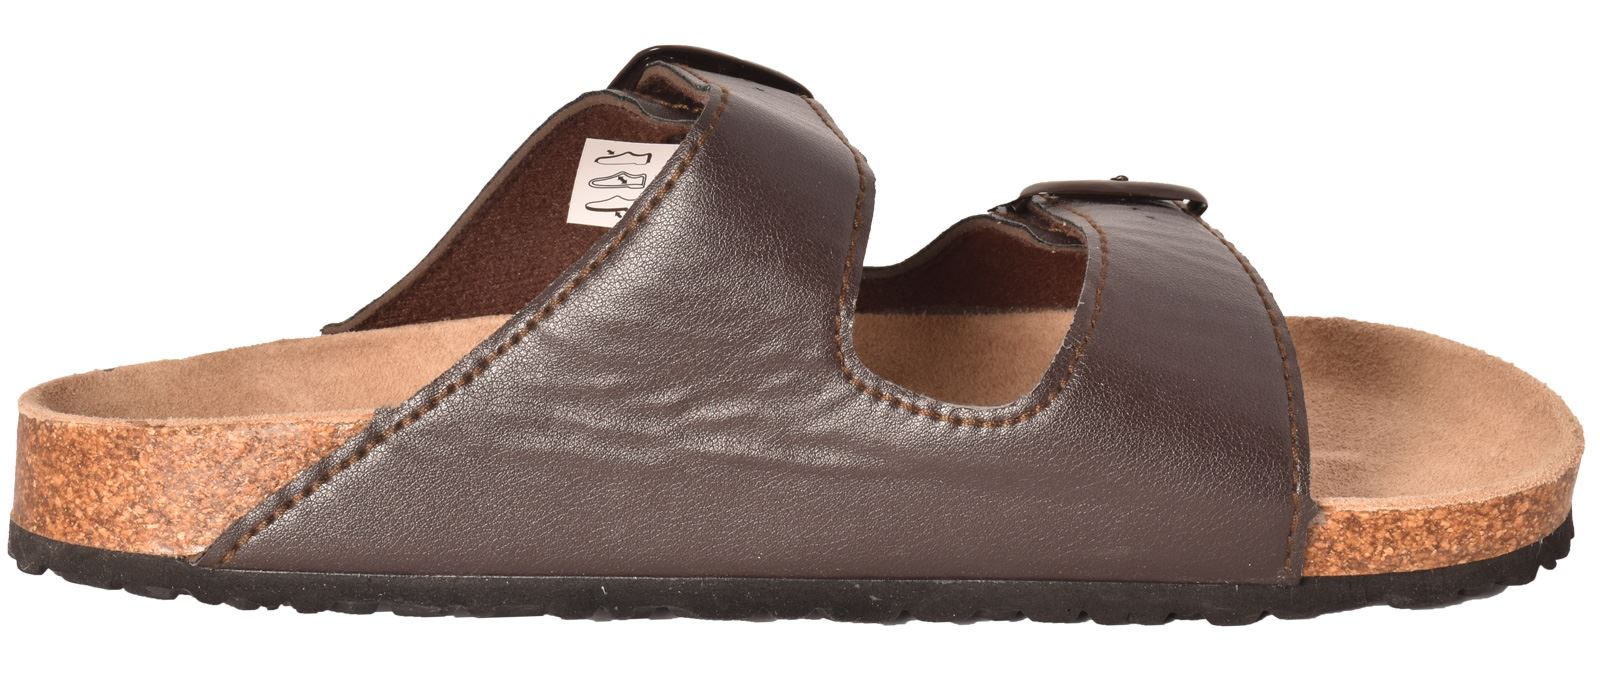 63c90fba485d Mens Slider Mules Slip-on Sandal Leather Insock Foot Bed Beach Comfy ...